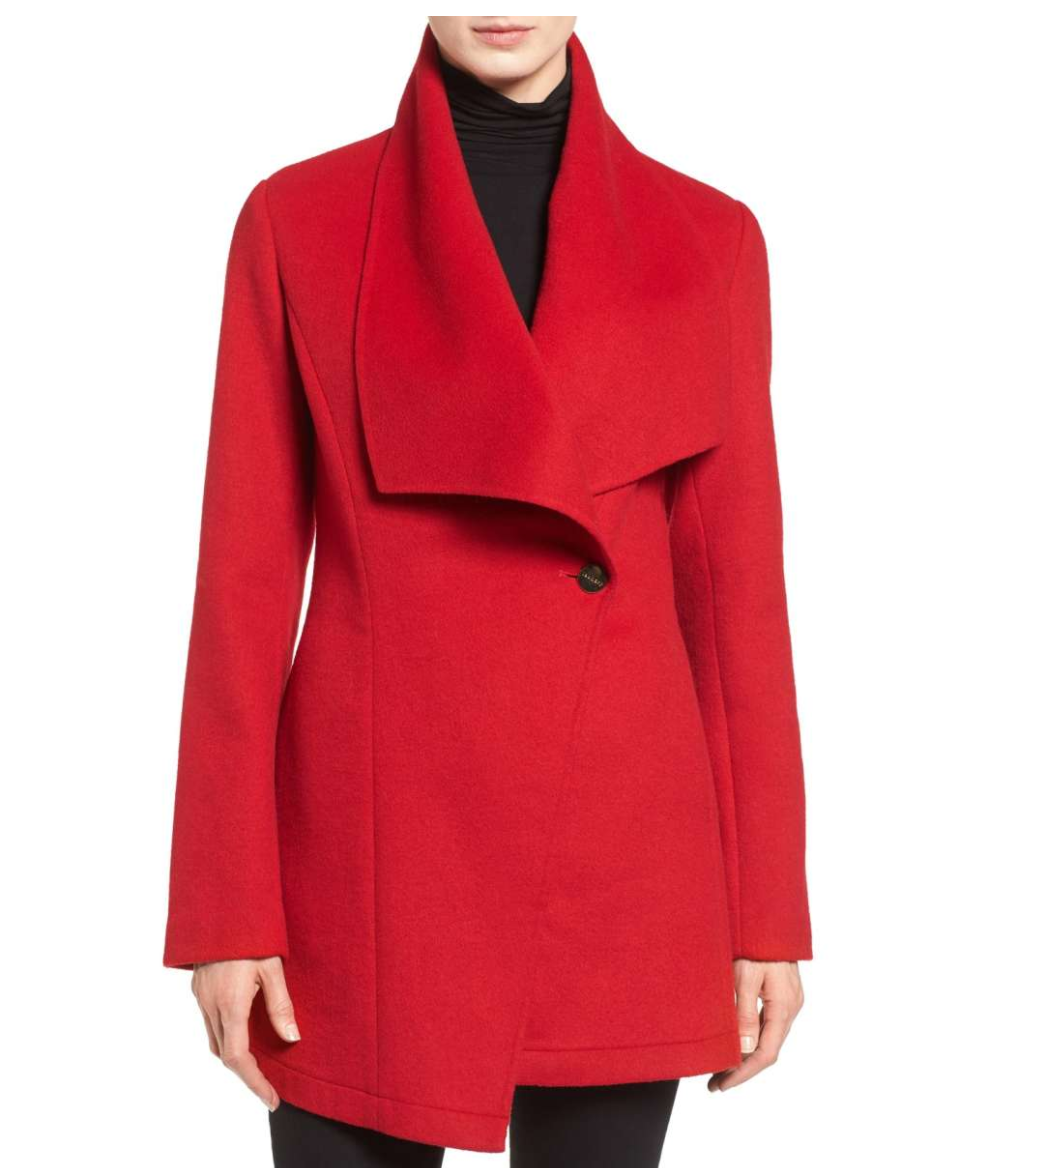 Red coat from Nordstrom